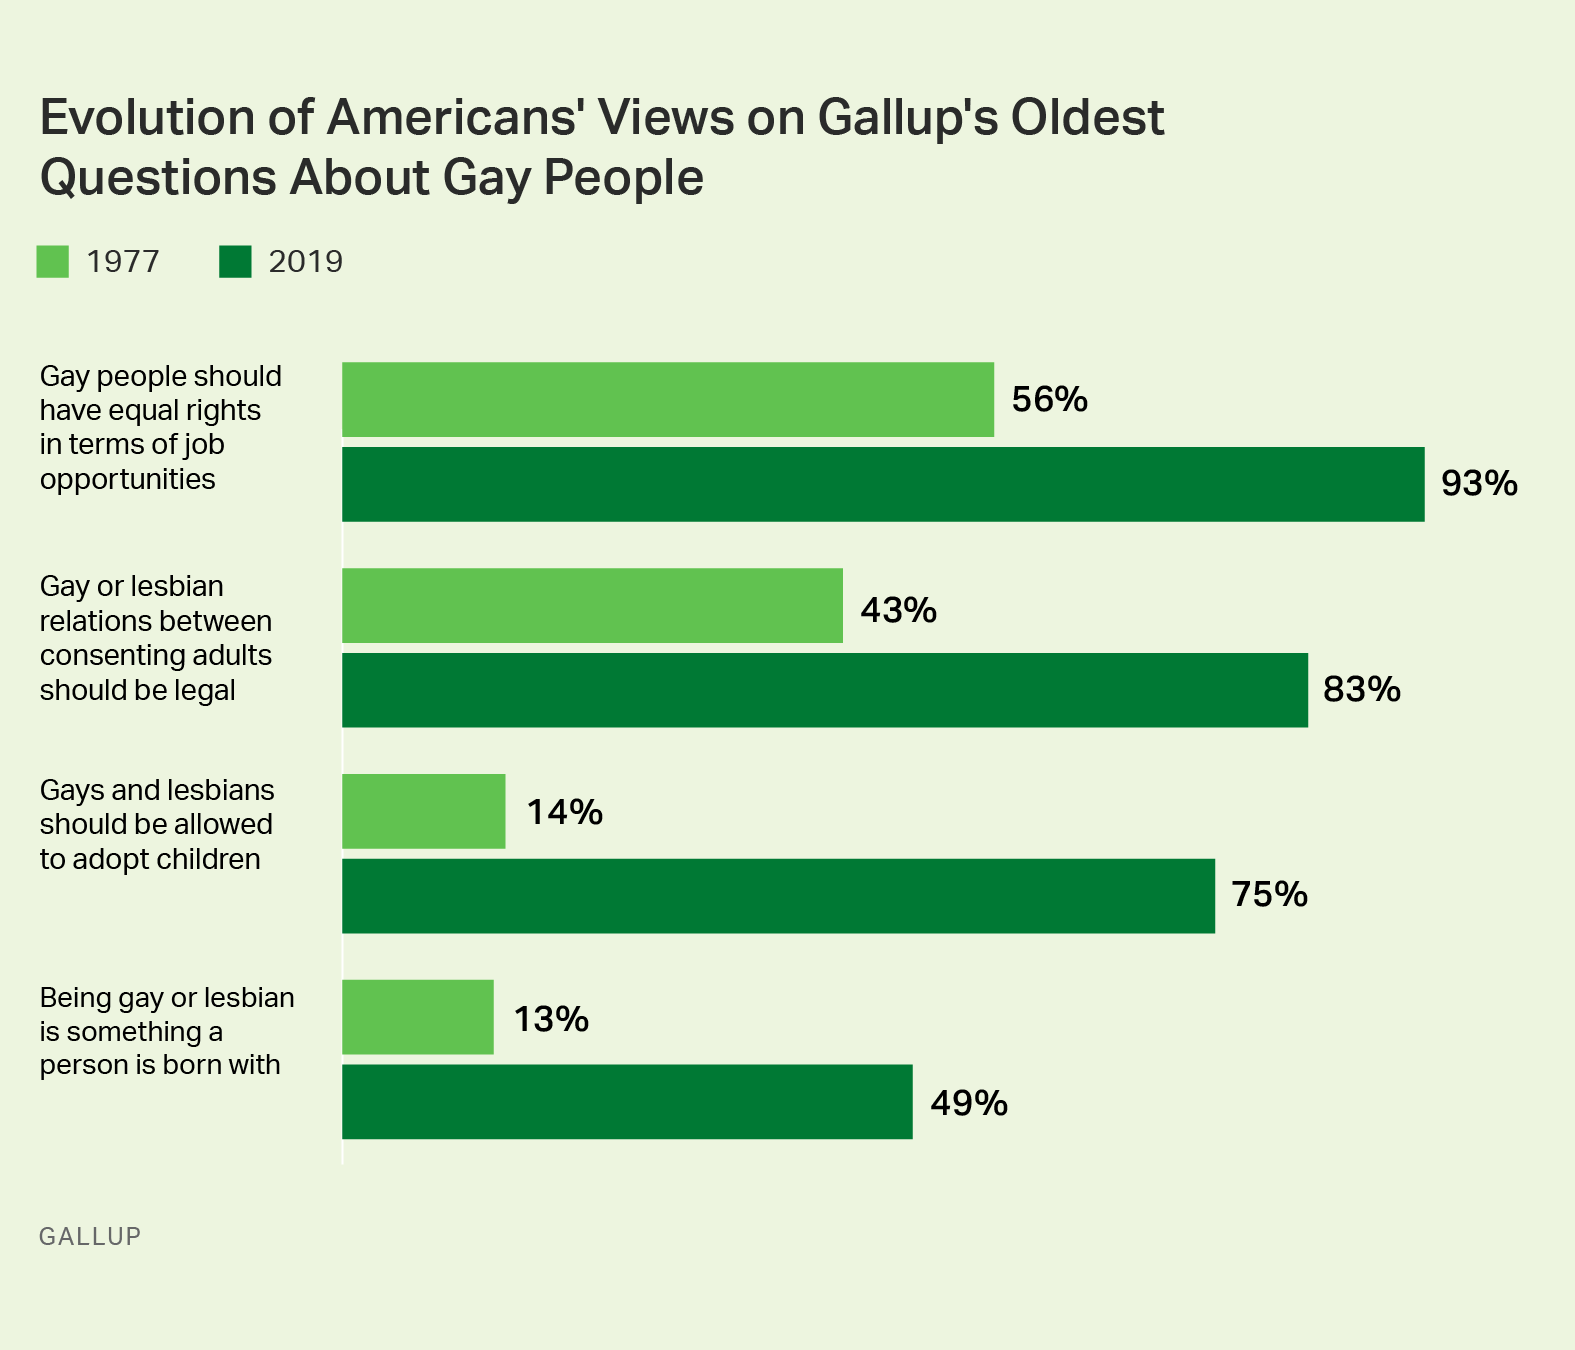 Americans' views of four questions about gay people in 1977 vs. 2019.